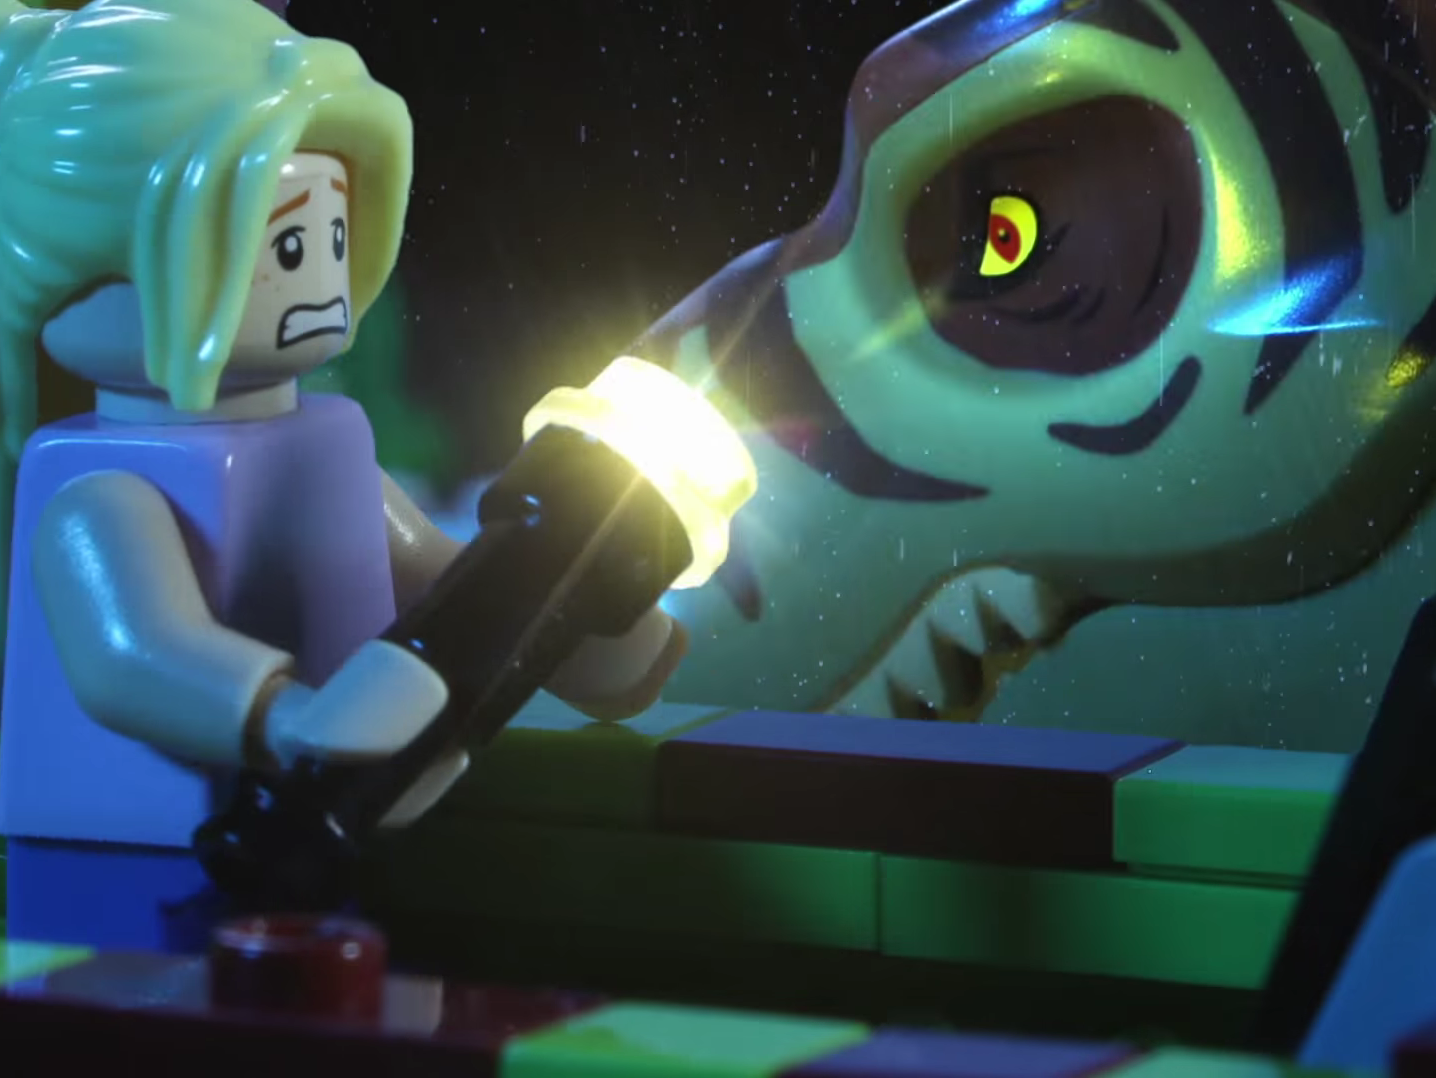 LEGO Jurassic Park Stop Motion Uses $100,000 Worth of LEGO ...